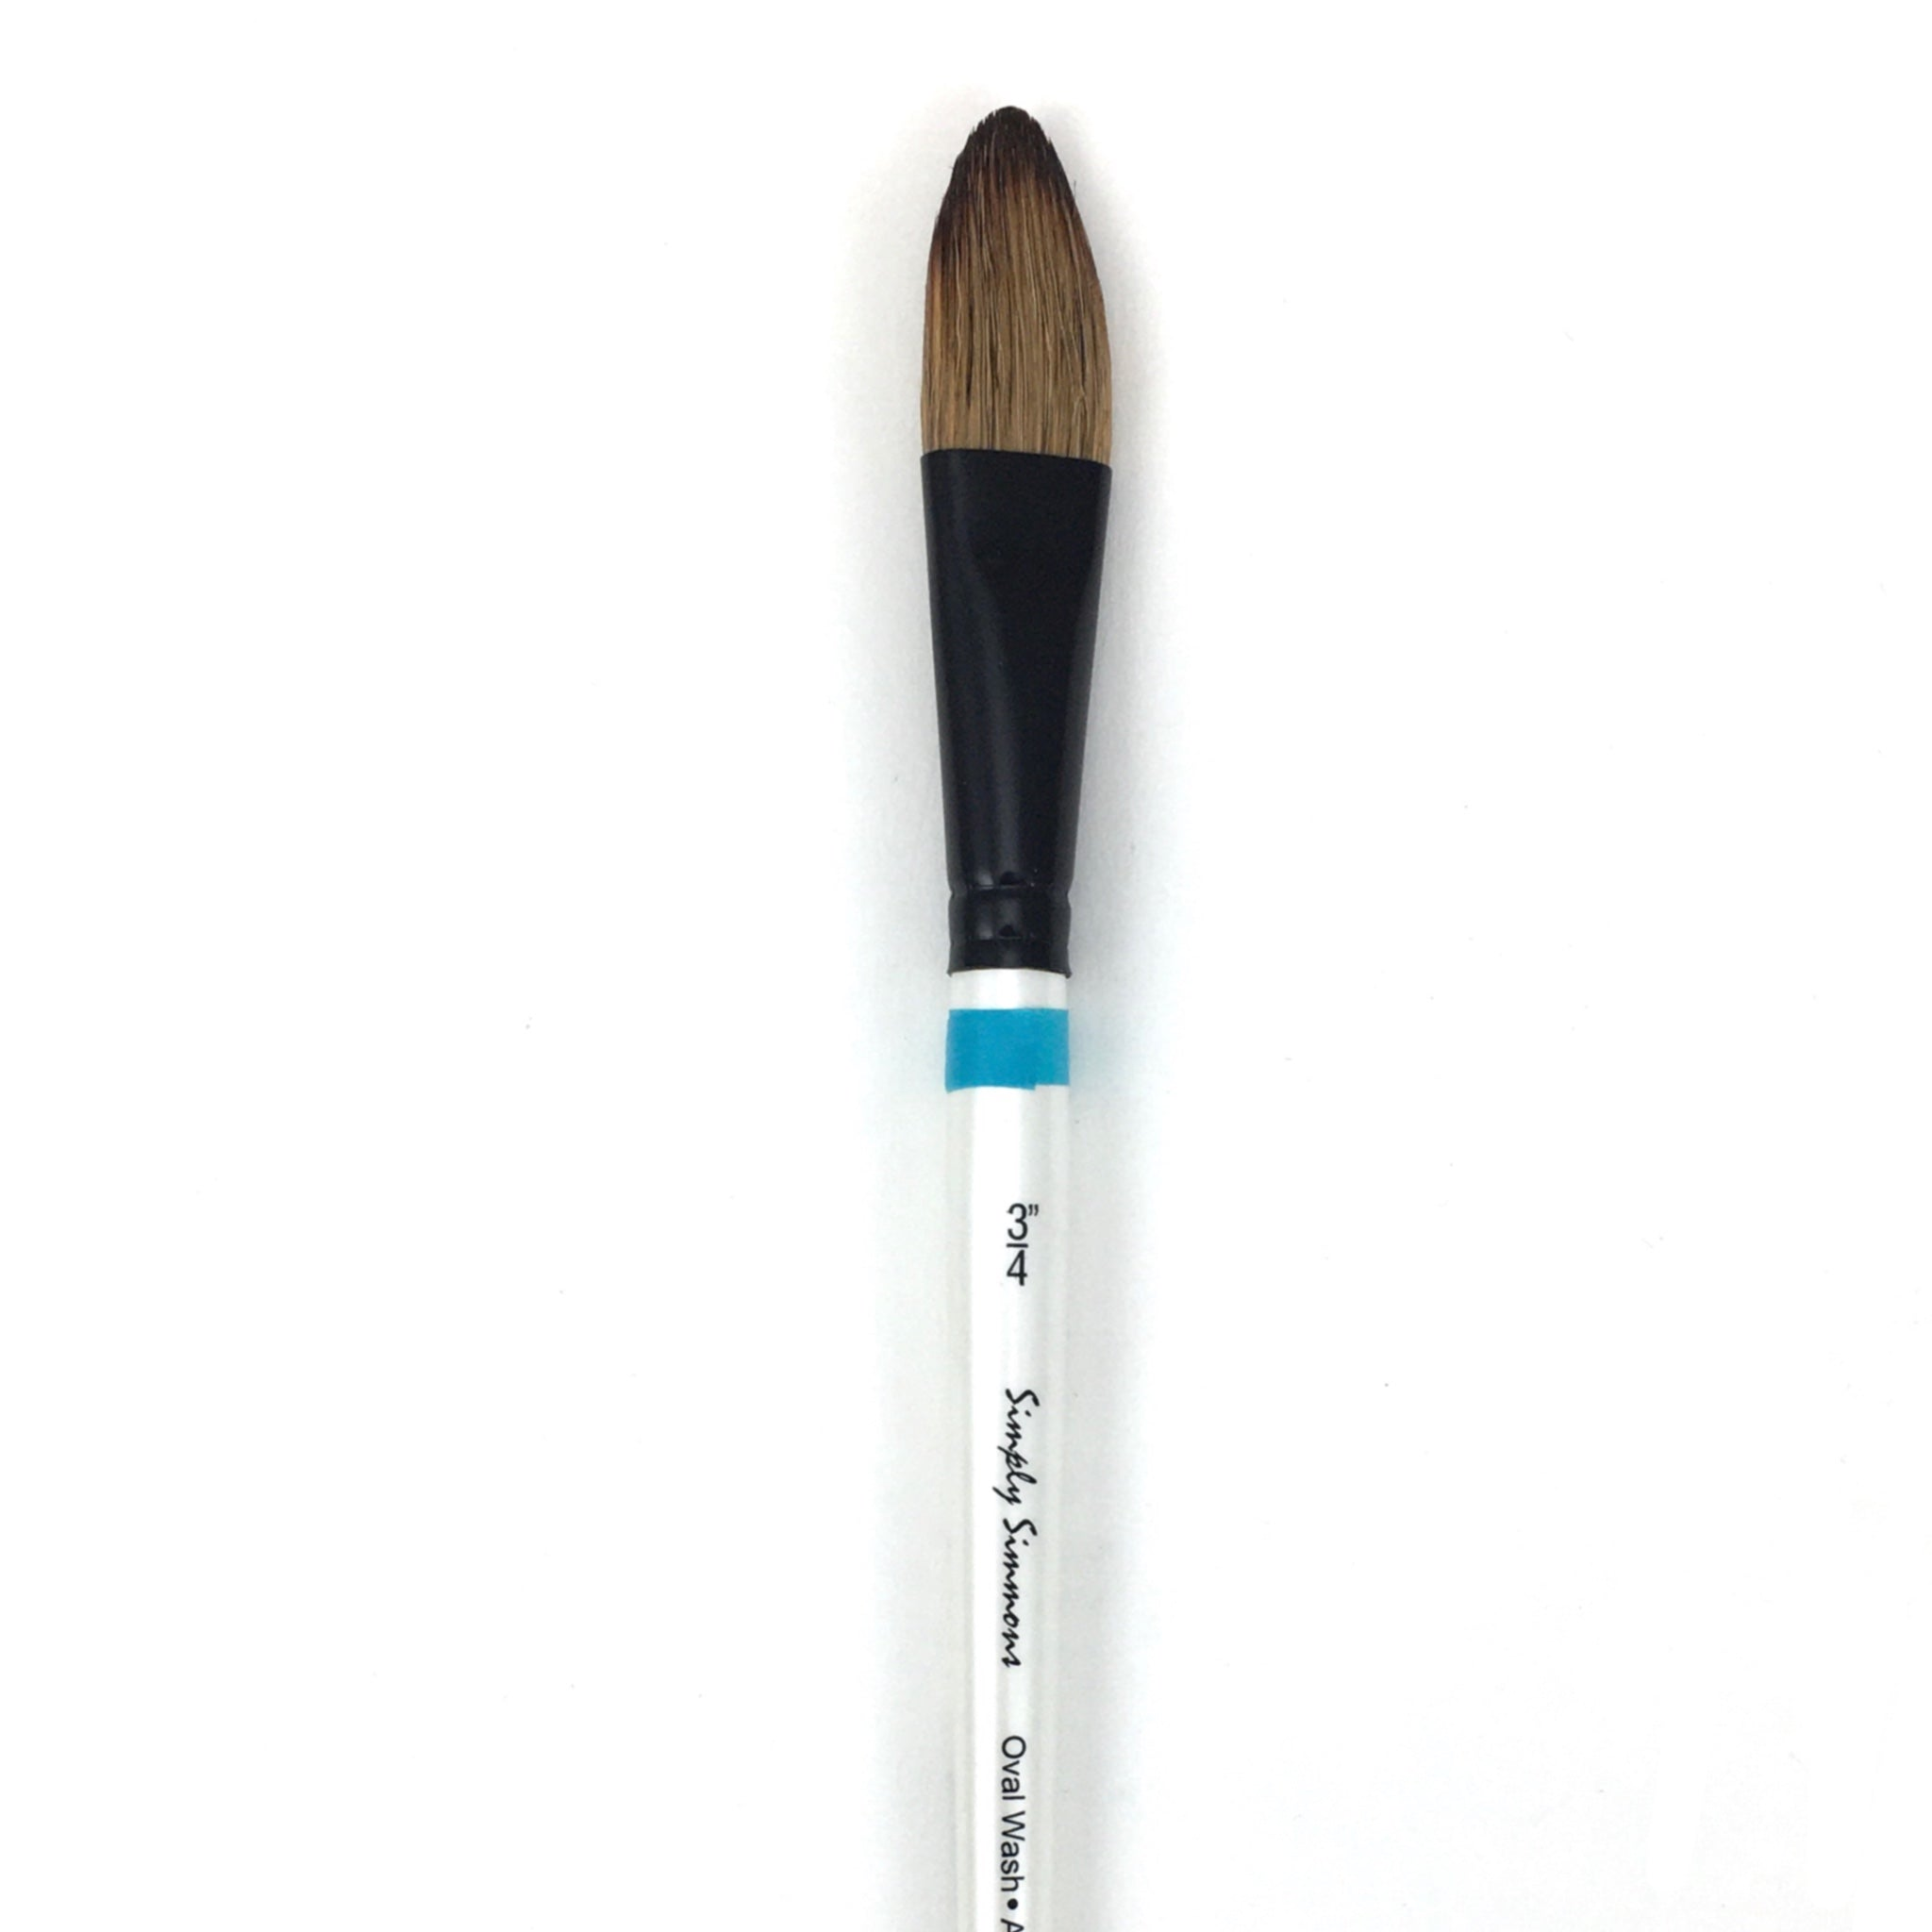 Robert Simmons Simply Simmons Watercolor Brush (Short Handle) - Oval Wash / - 3/4 inches / - natural by Robert Simmons - K. A. Artist Shop